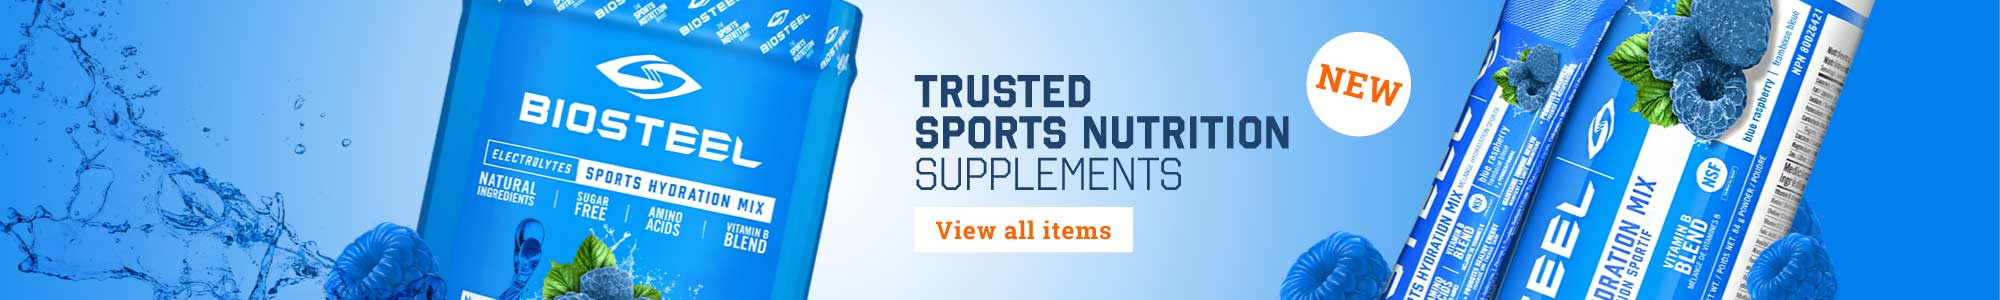 BioSteel - NEW - Trusted Sports Nutrition Supplements - VIEW ALL ITEMS